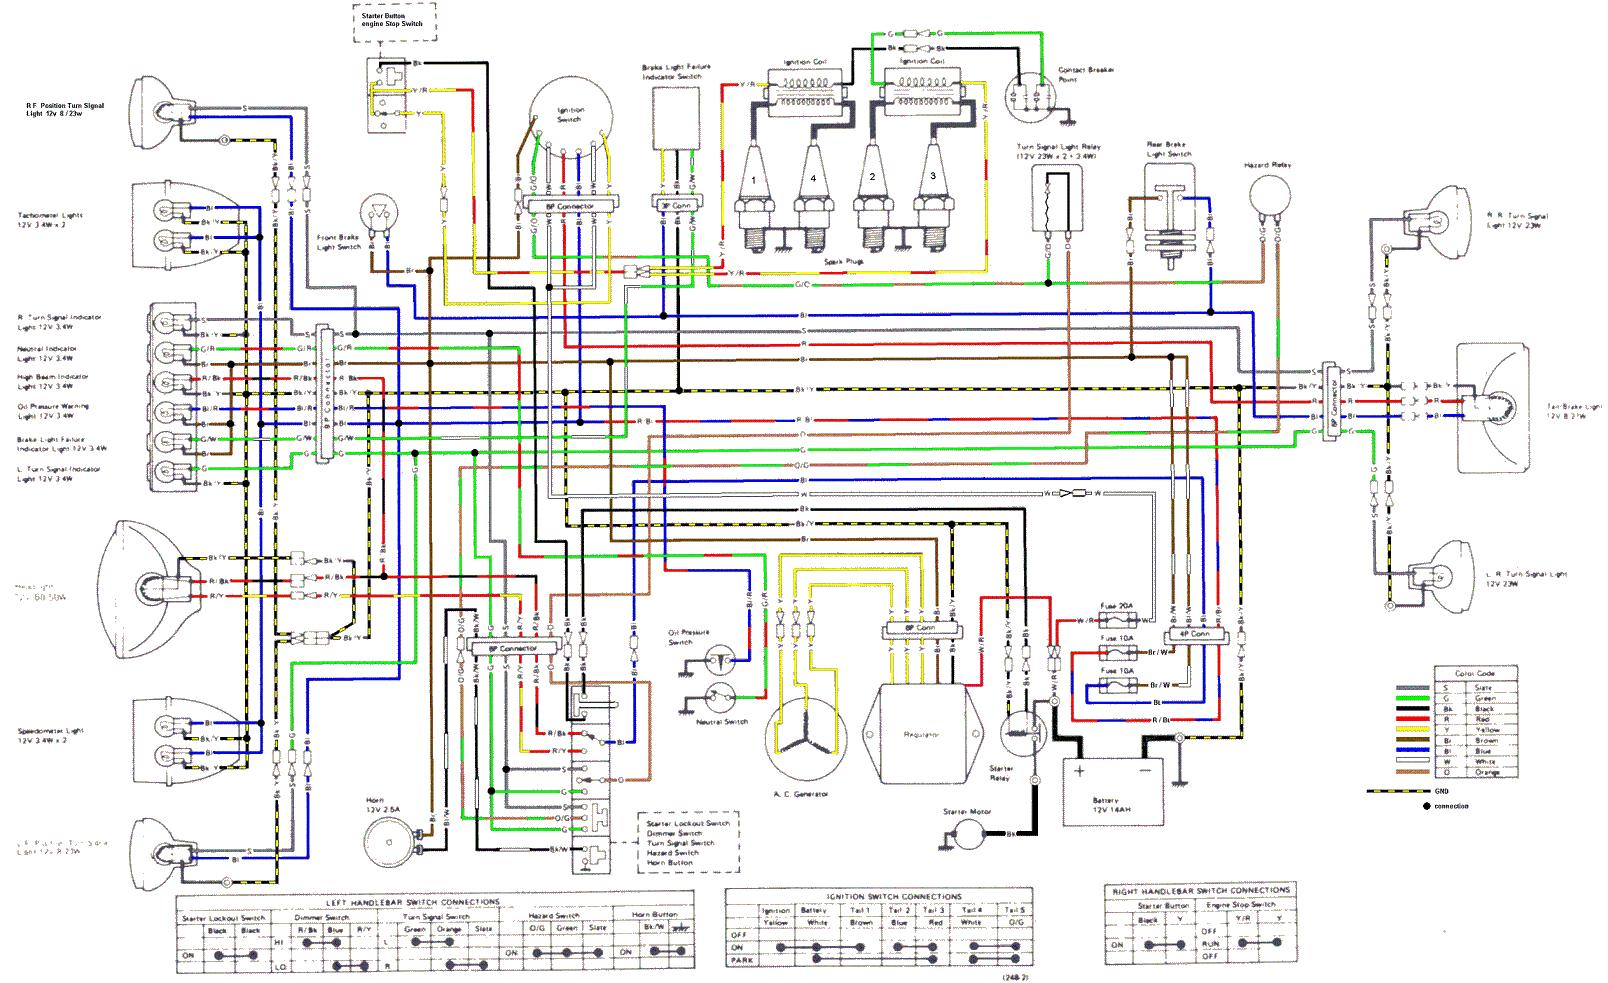 Kz1000 Shaft Wiring Diagram - Wiring Diagram K9 on